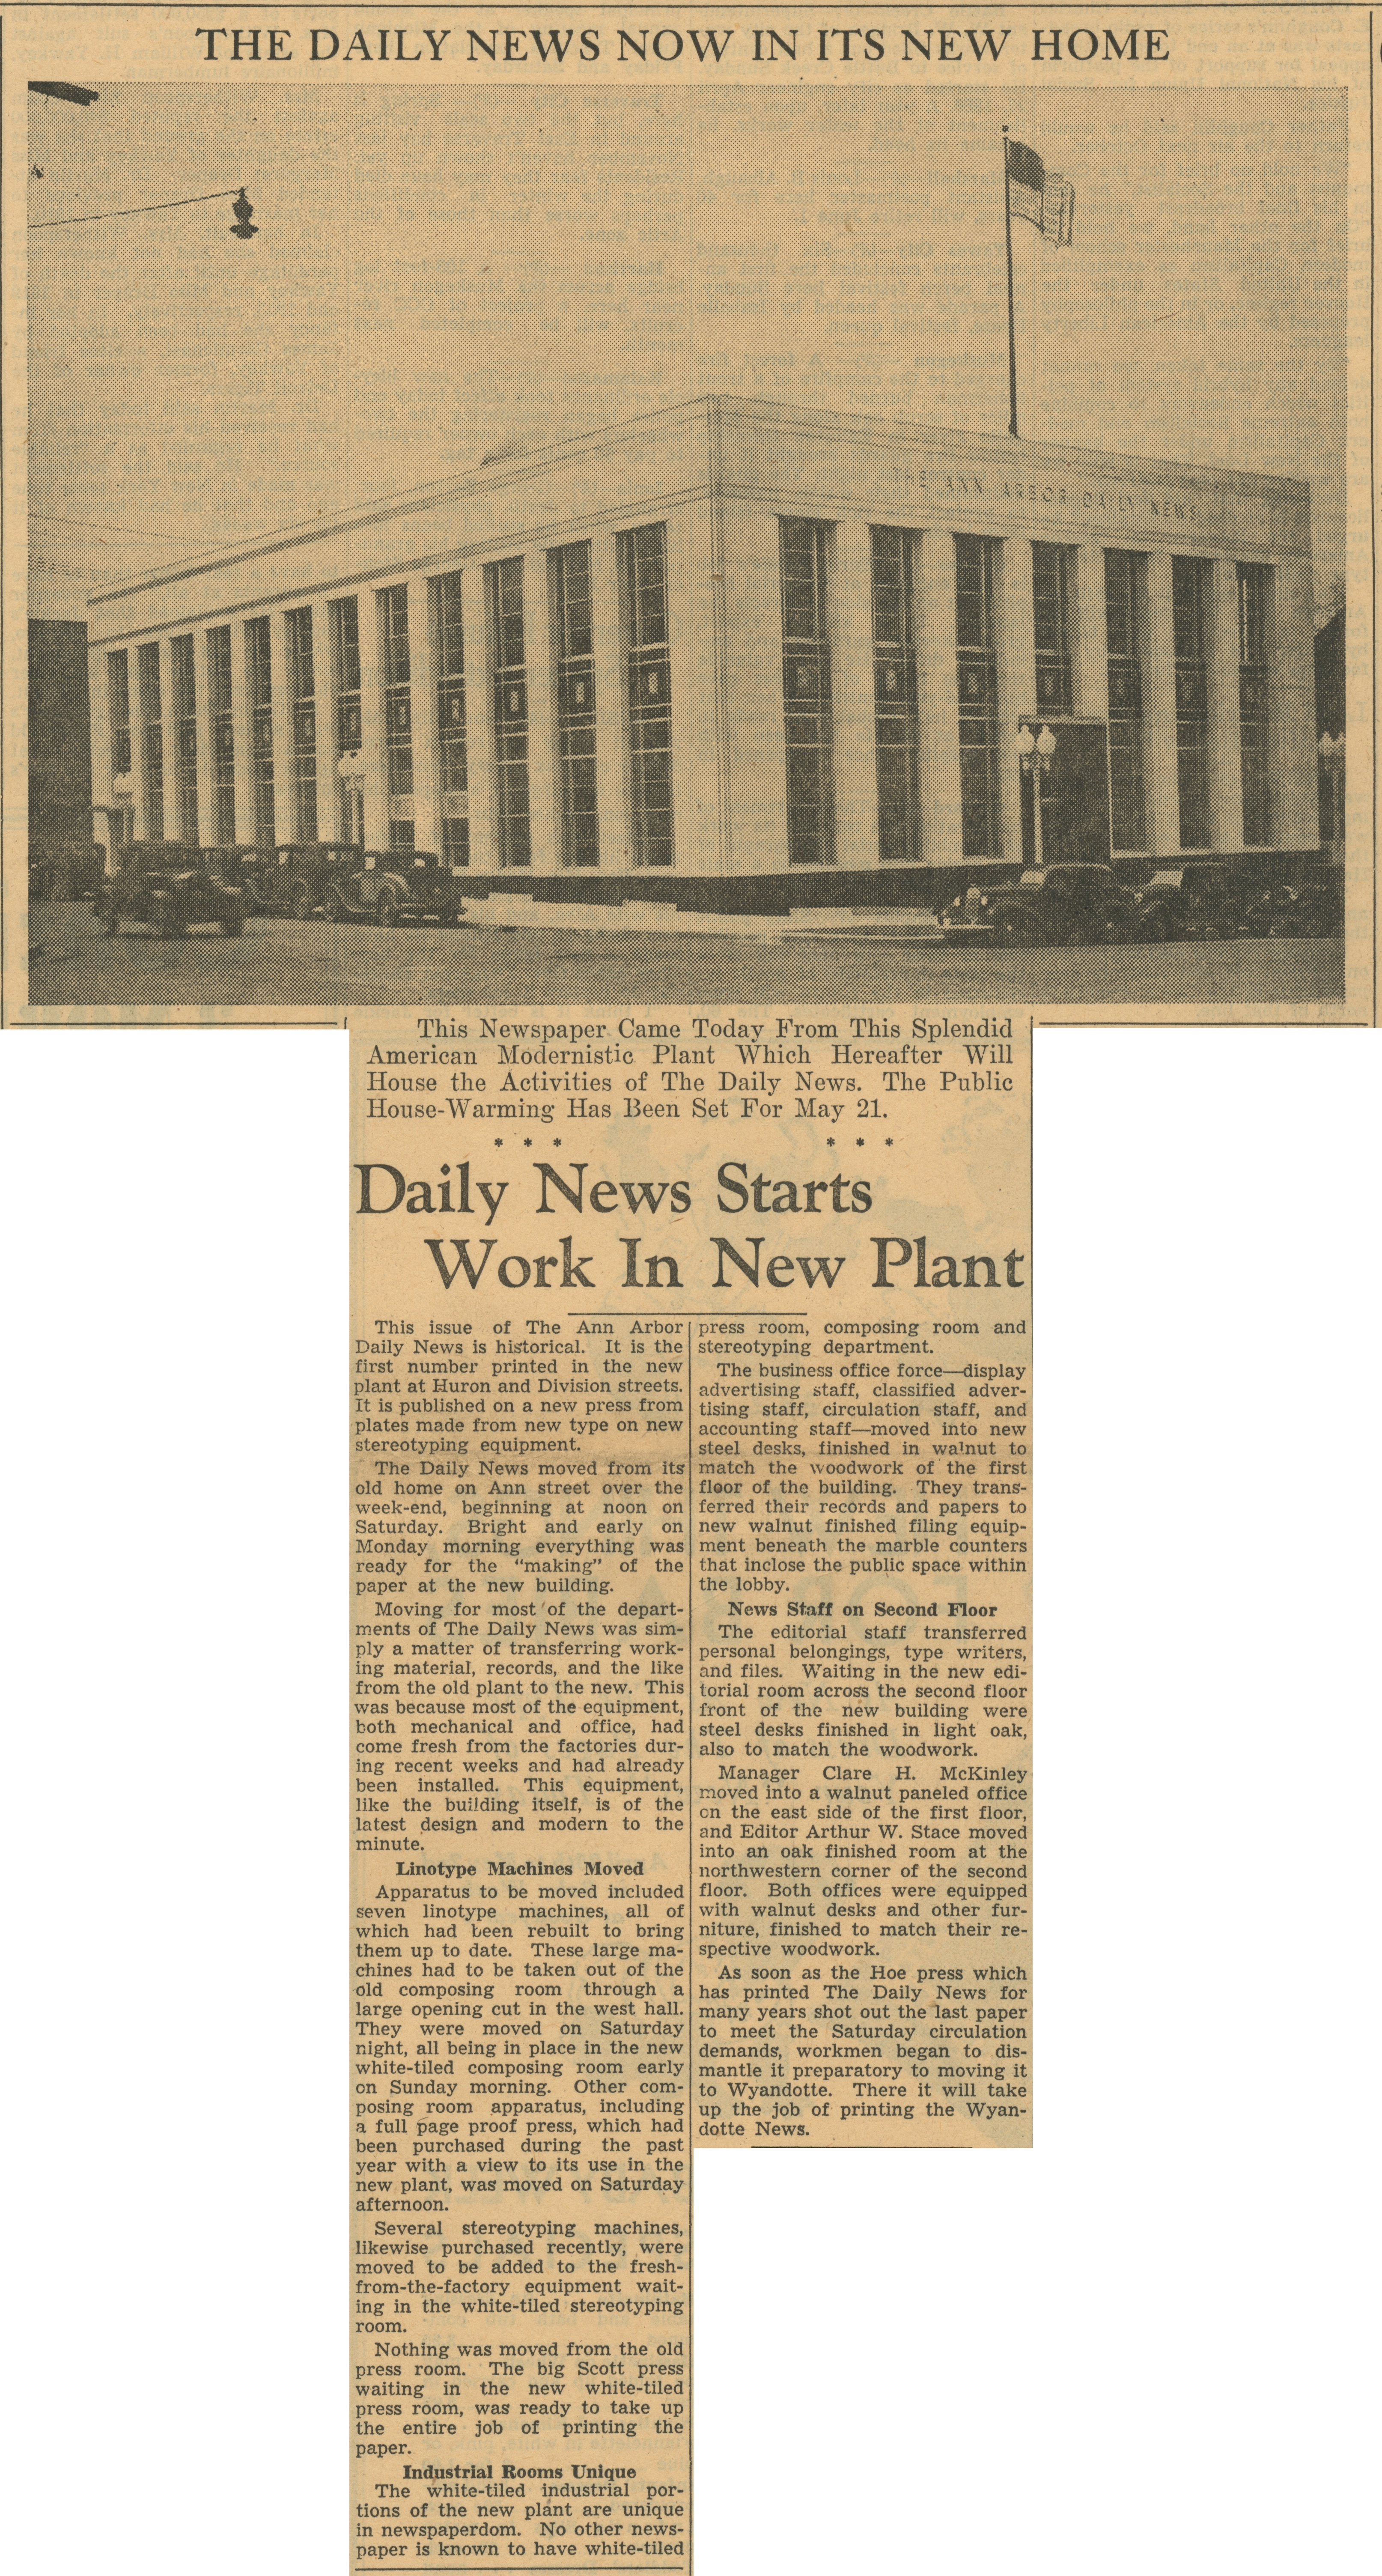 Daily News Now In Its New Home - Daily News Starts Work In New Plant image